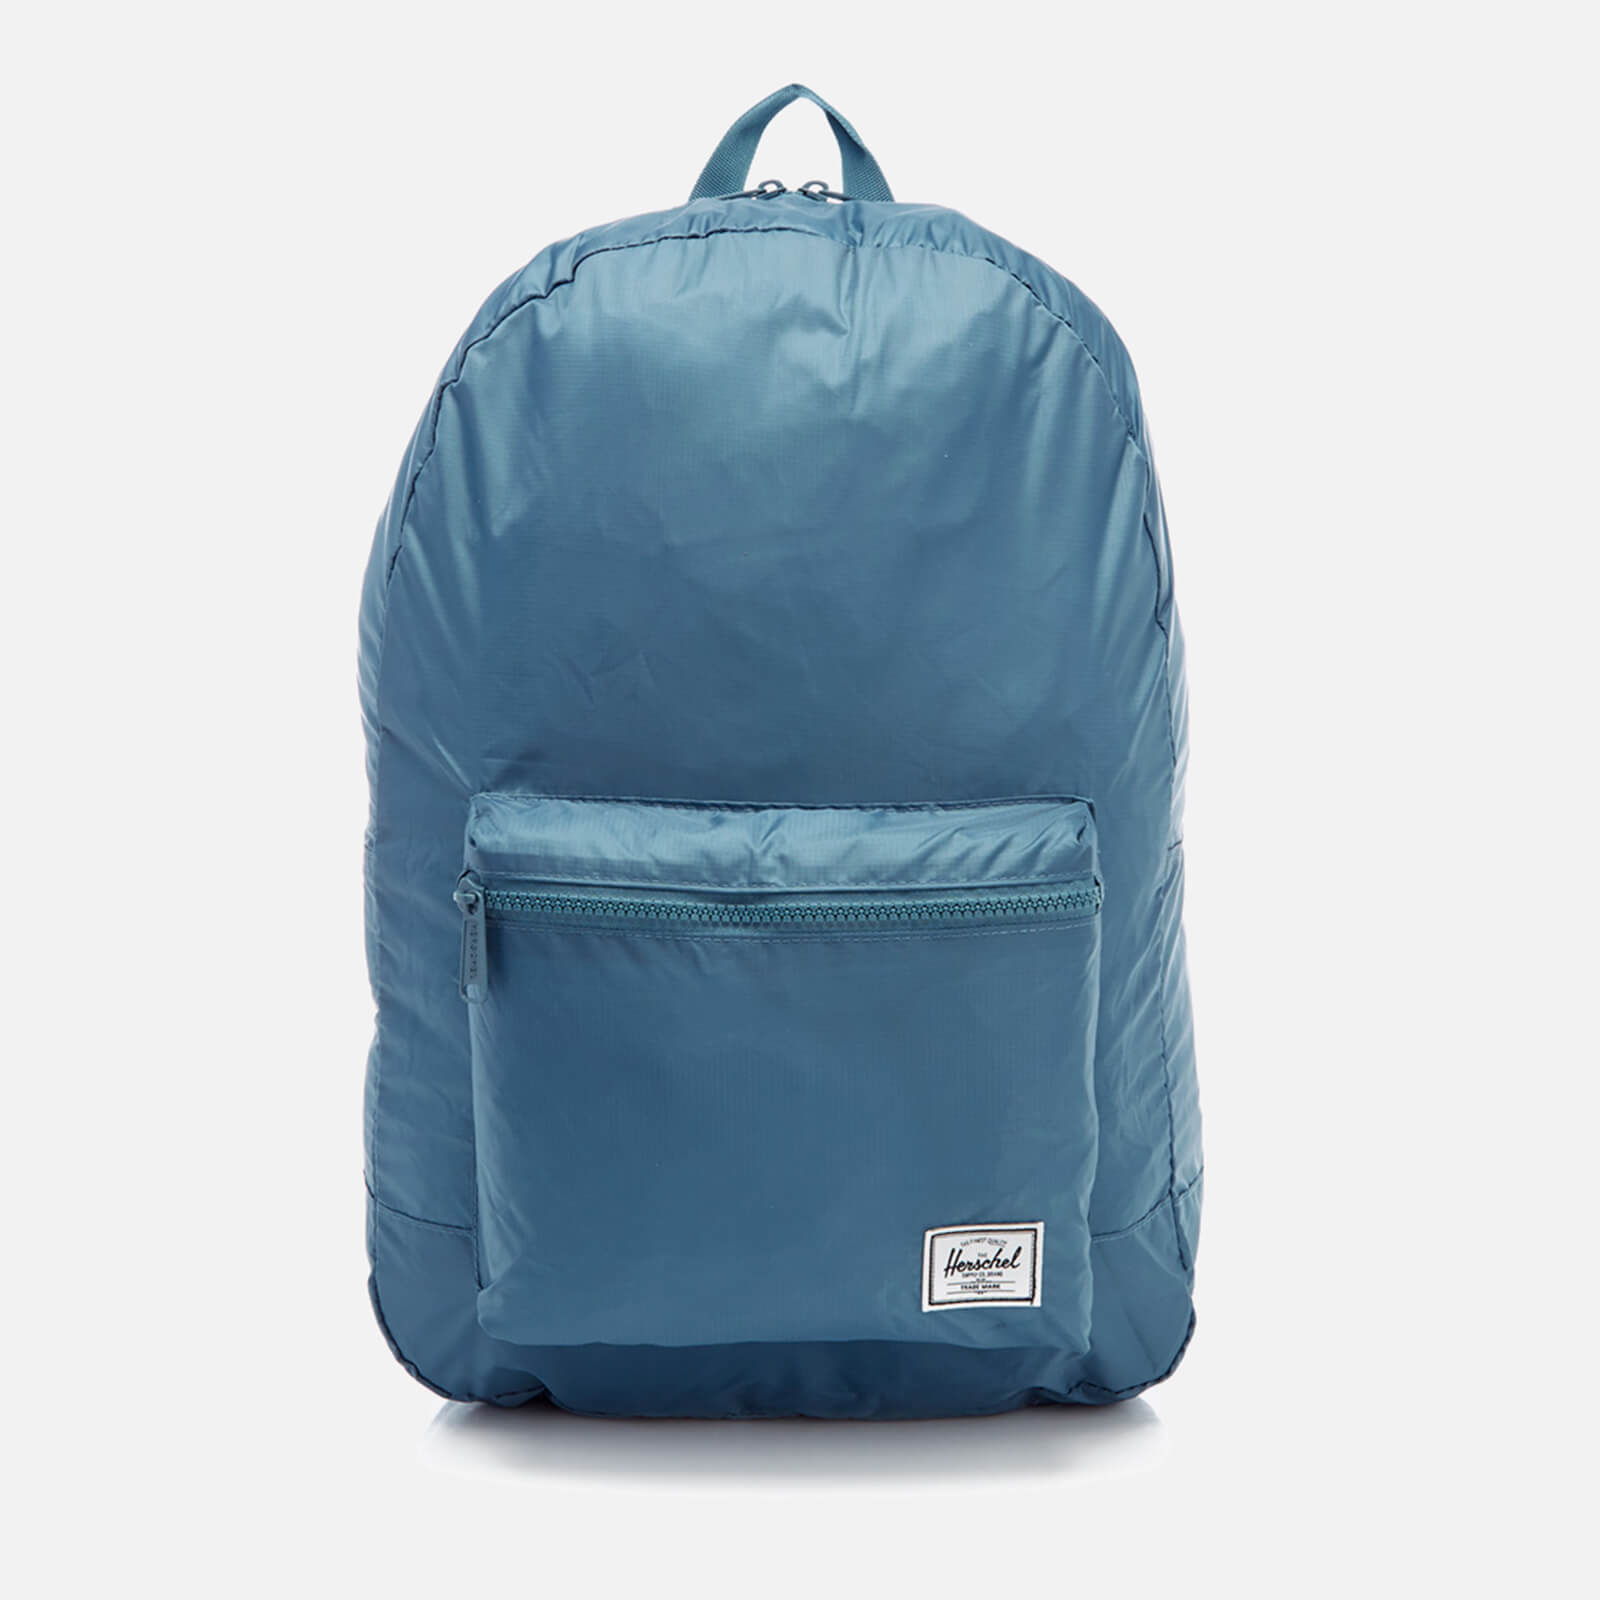 c1d4570a00ea Herschel Supply Co. Packable Daypack Backpack - Stellar - Free UK Delivery  over £50